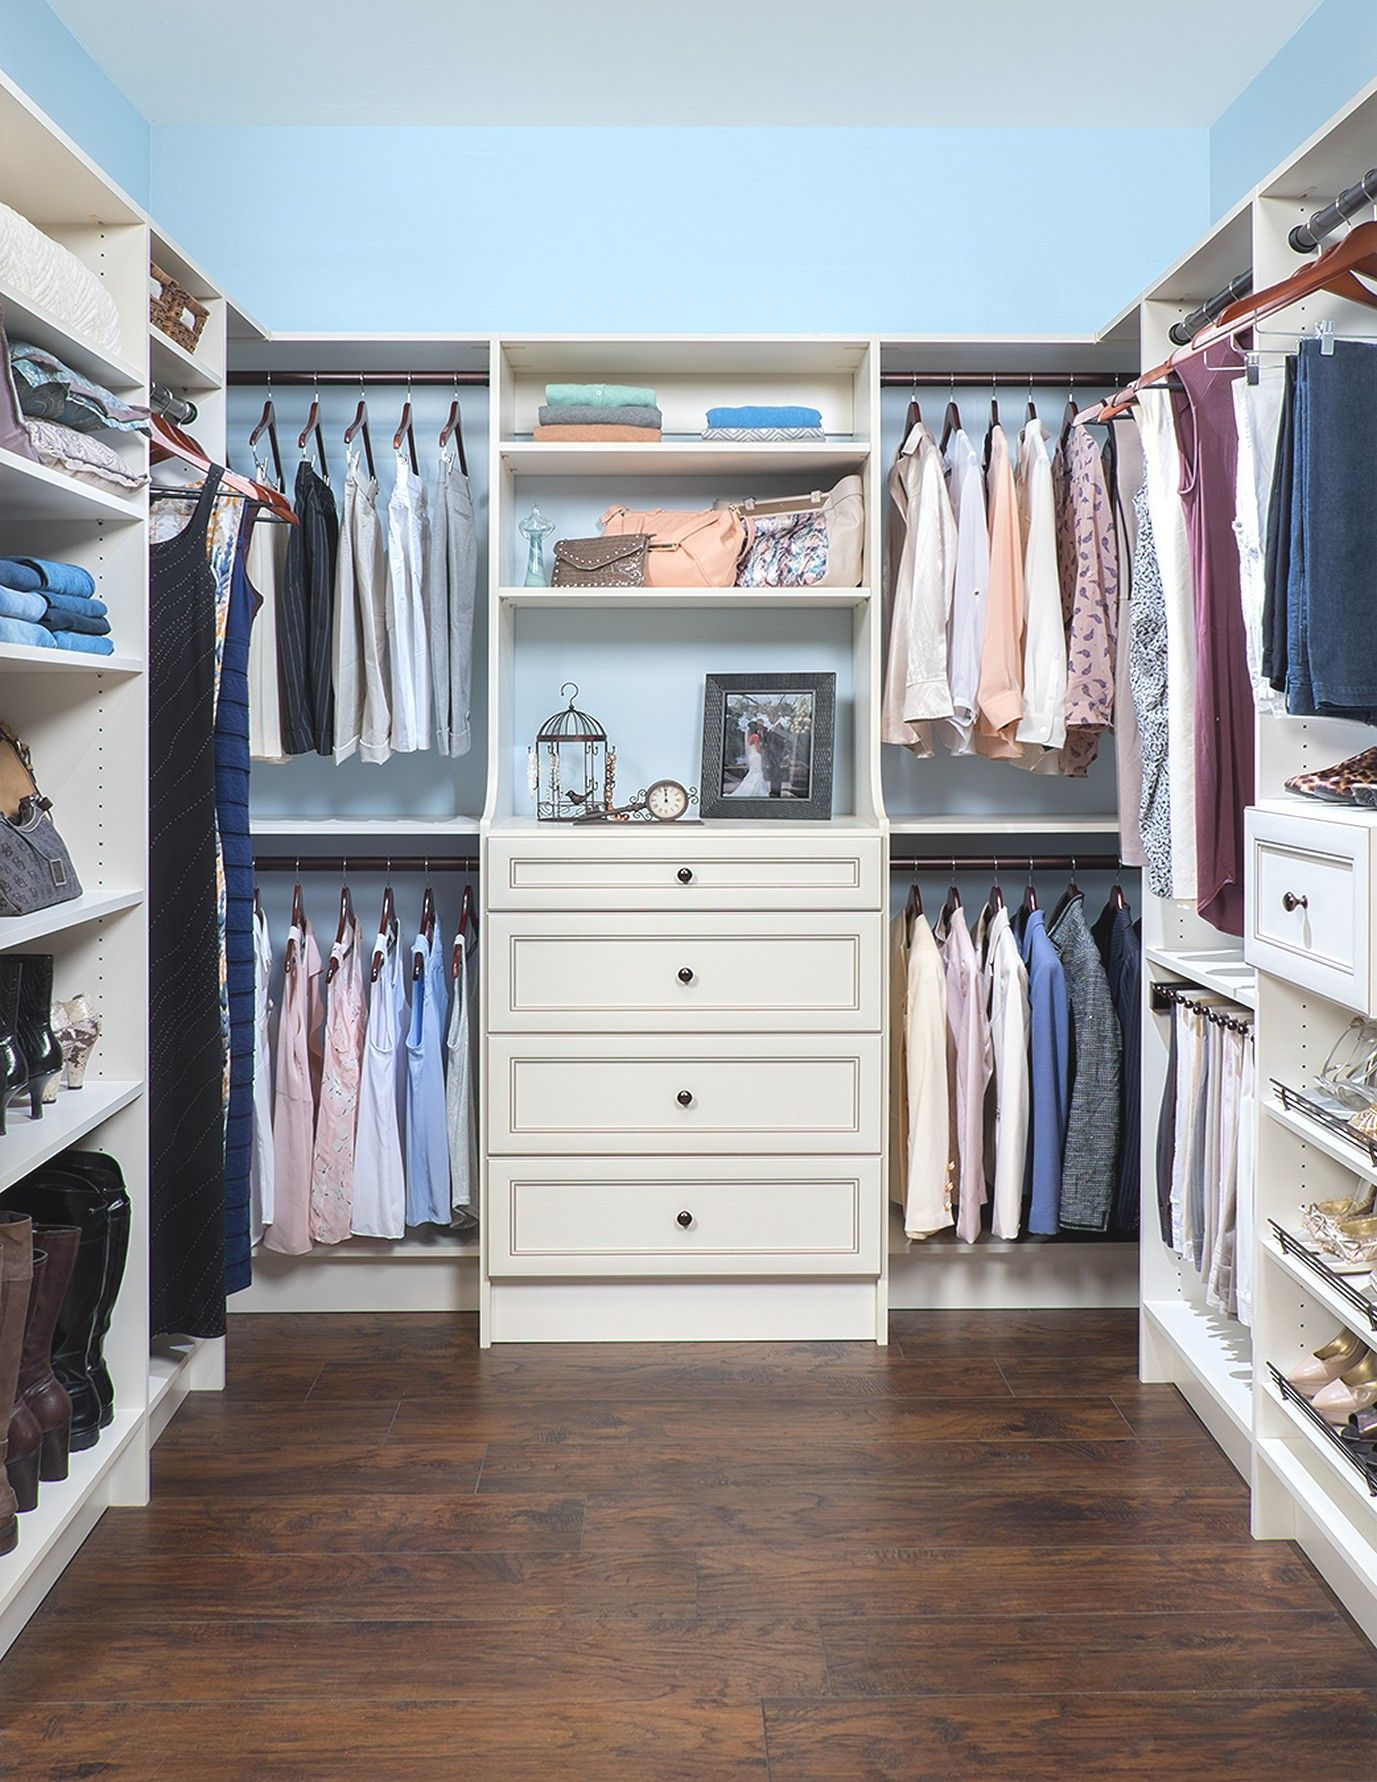 Simple Ways Make Your Walk-in Closet Look Very Chic #homedesigntips #homedecorationideas #homedesignideas #hometips #homecare #homedecorating #home